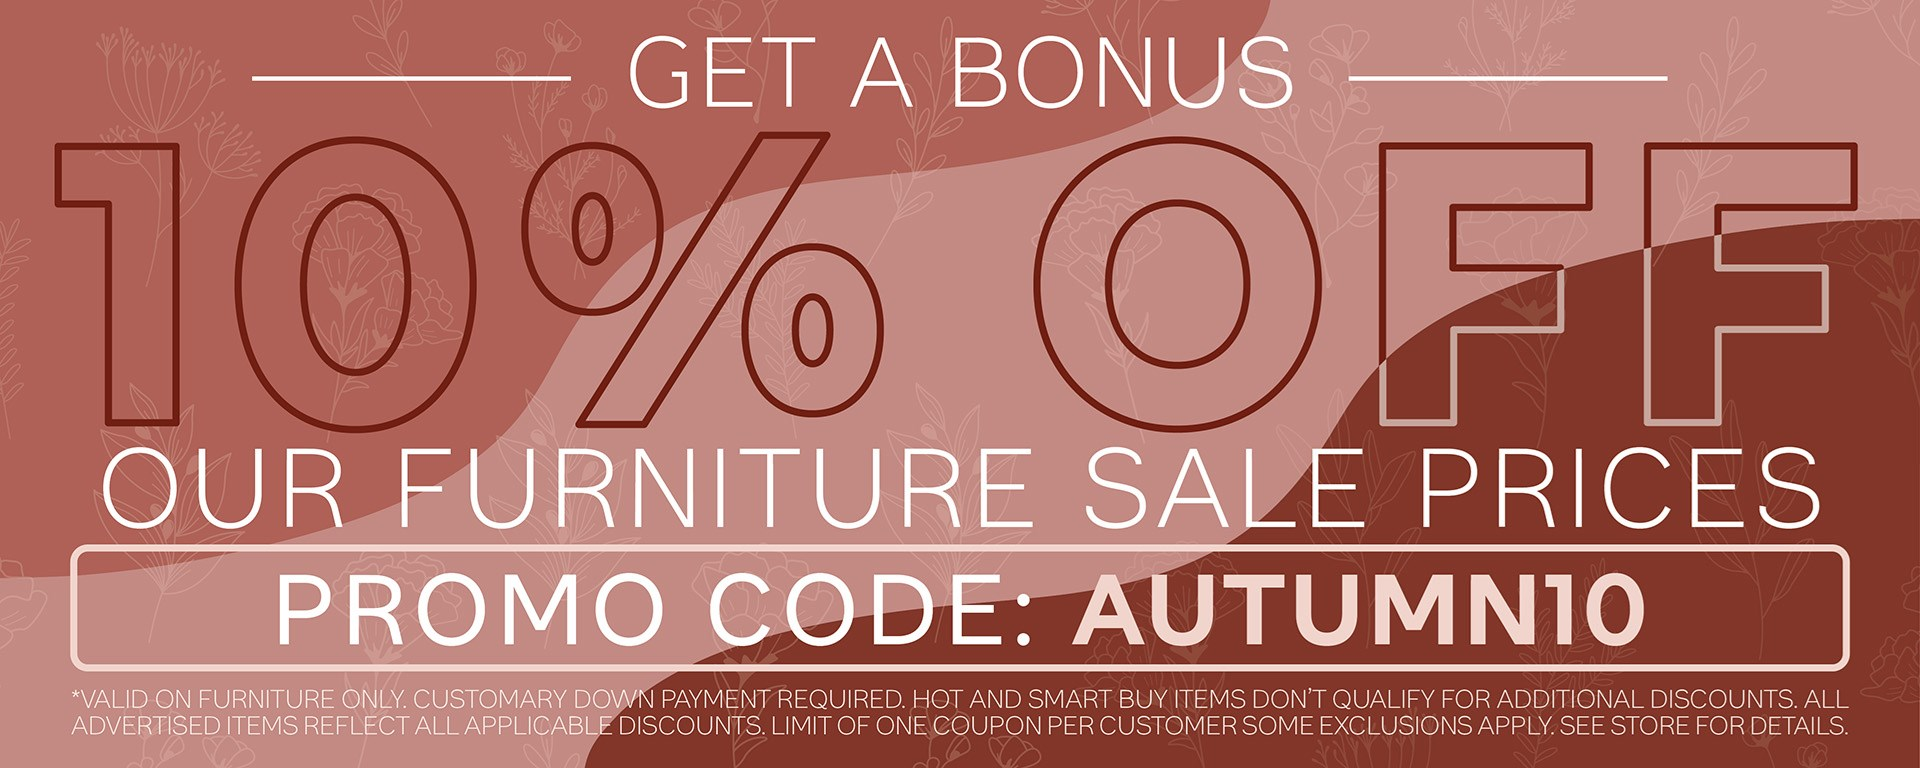 Furniture & ApplianceMart Fall Home Sale